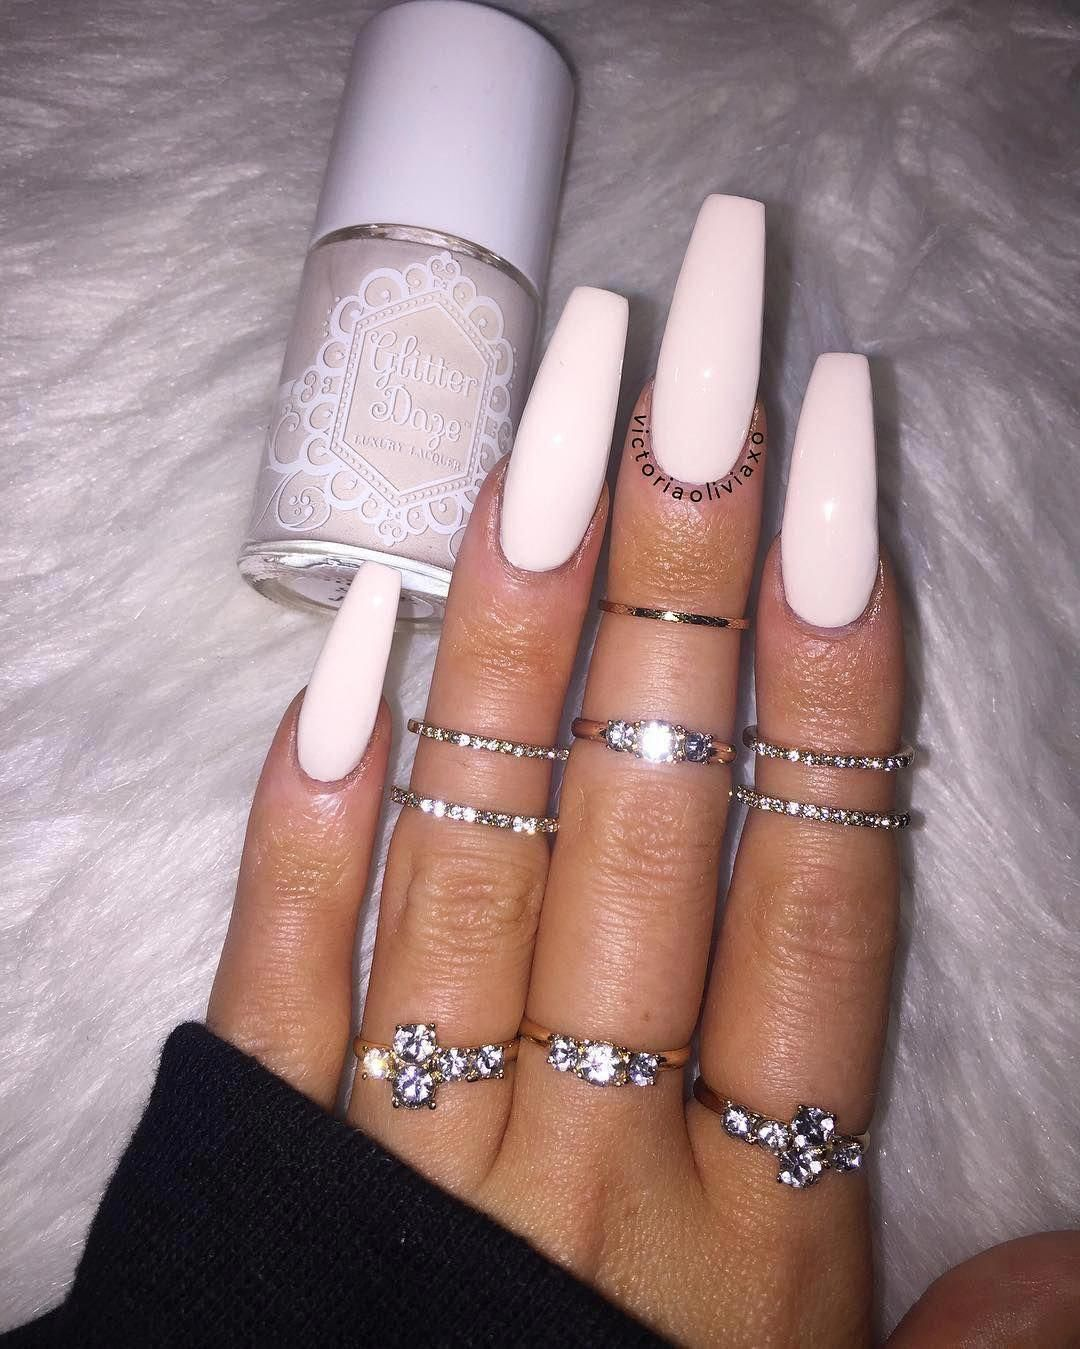 Pin On Nails Lashes Beauty